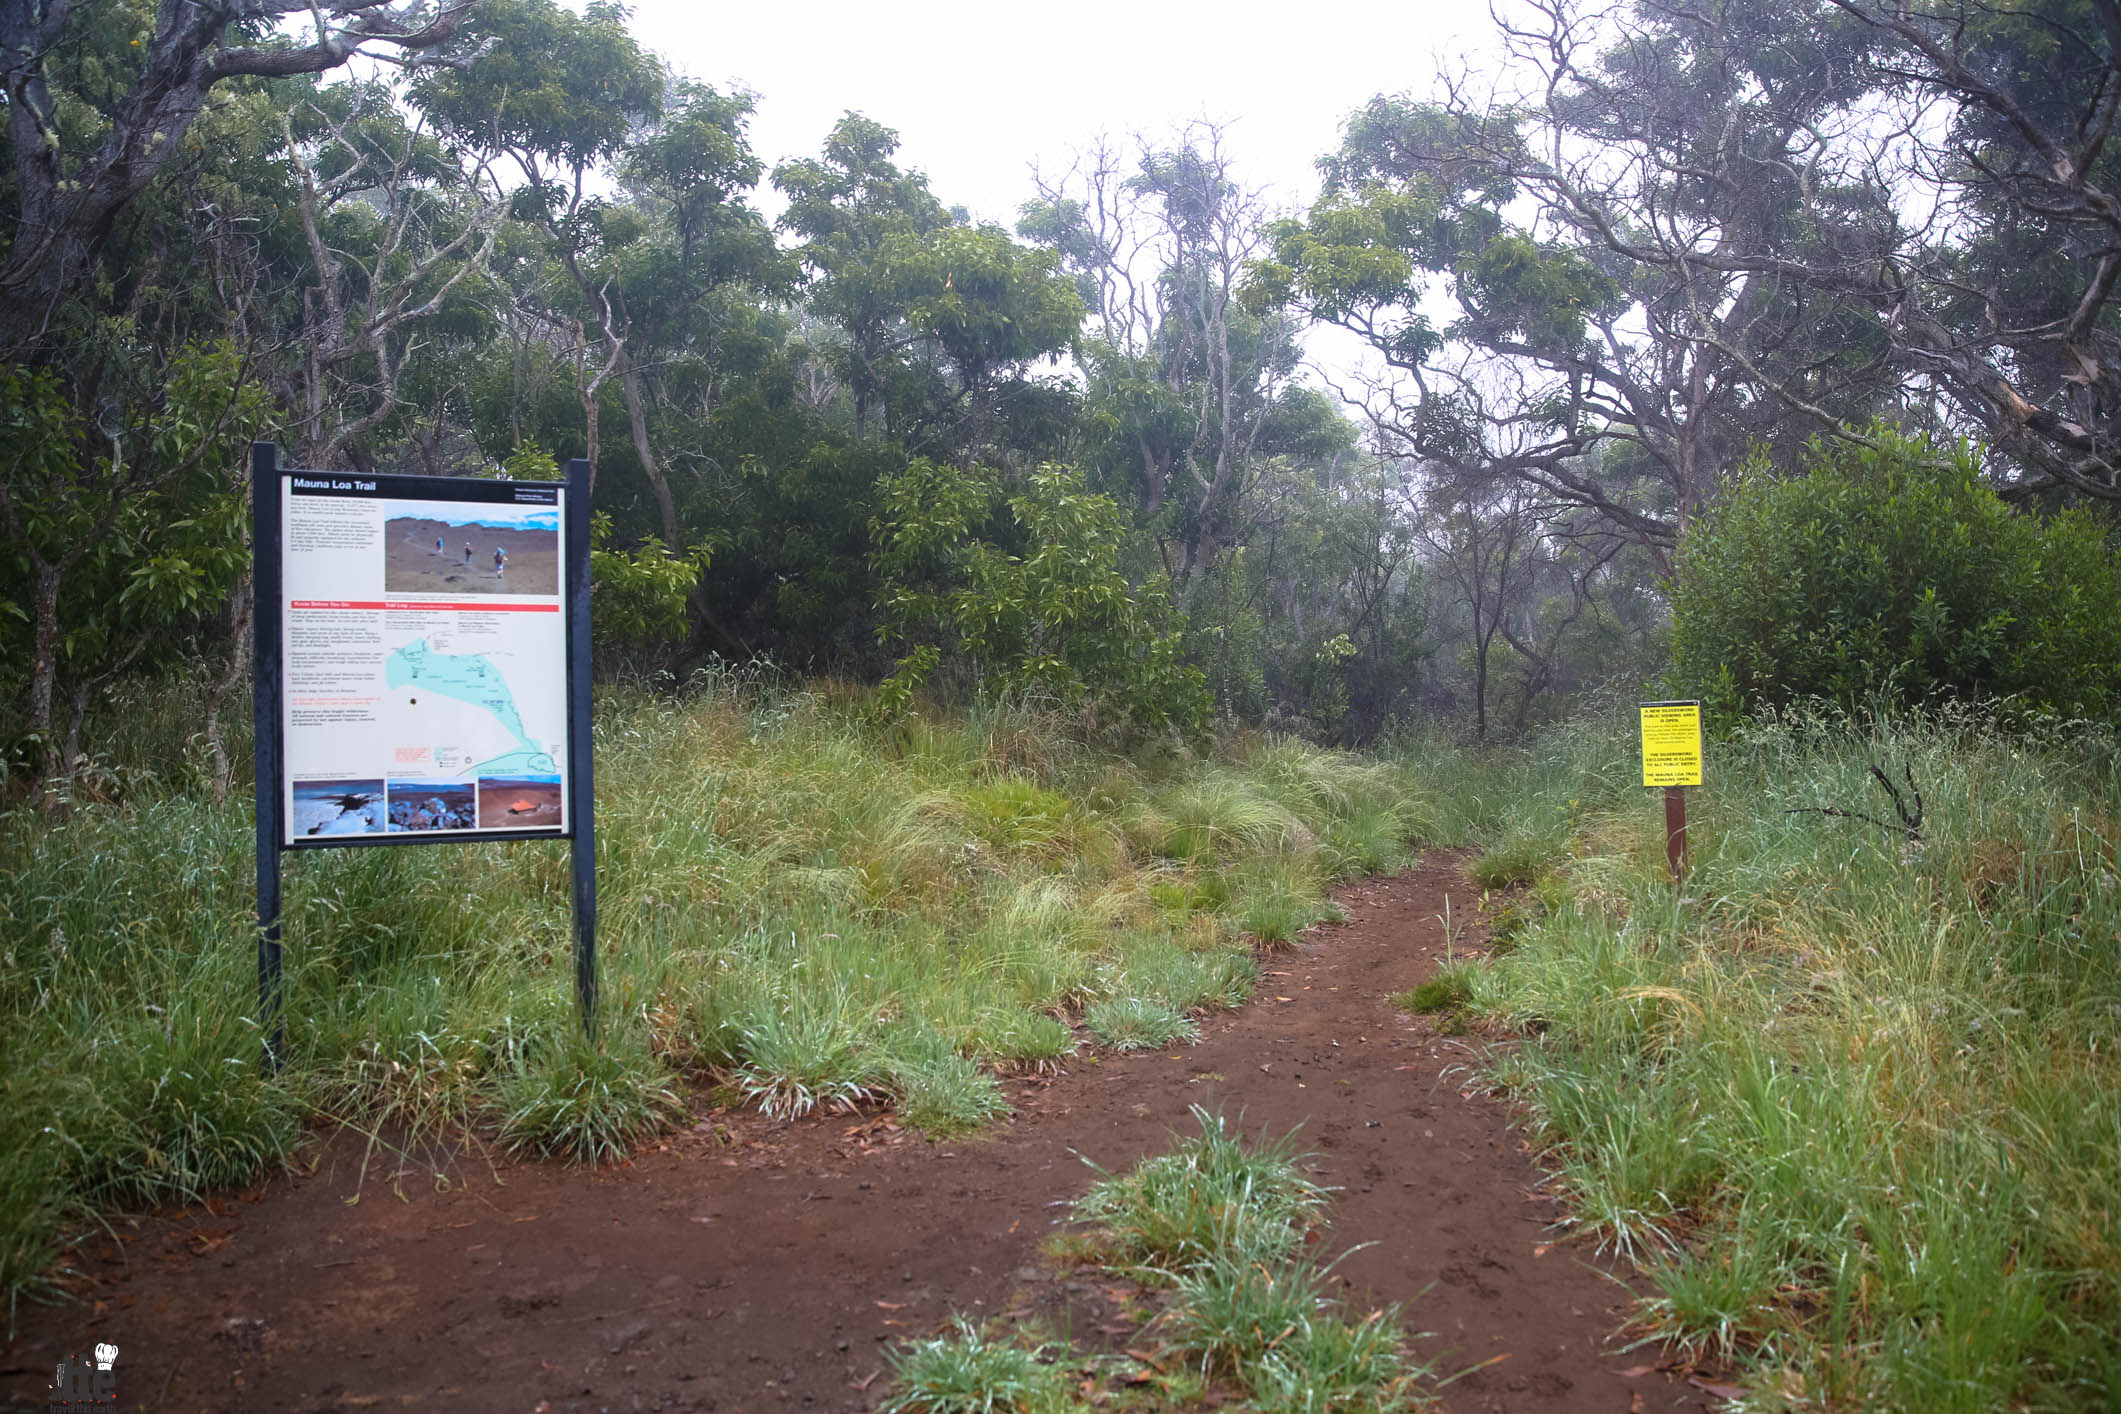 Hiking the Mauna Loa Trail